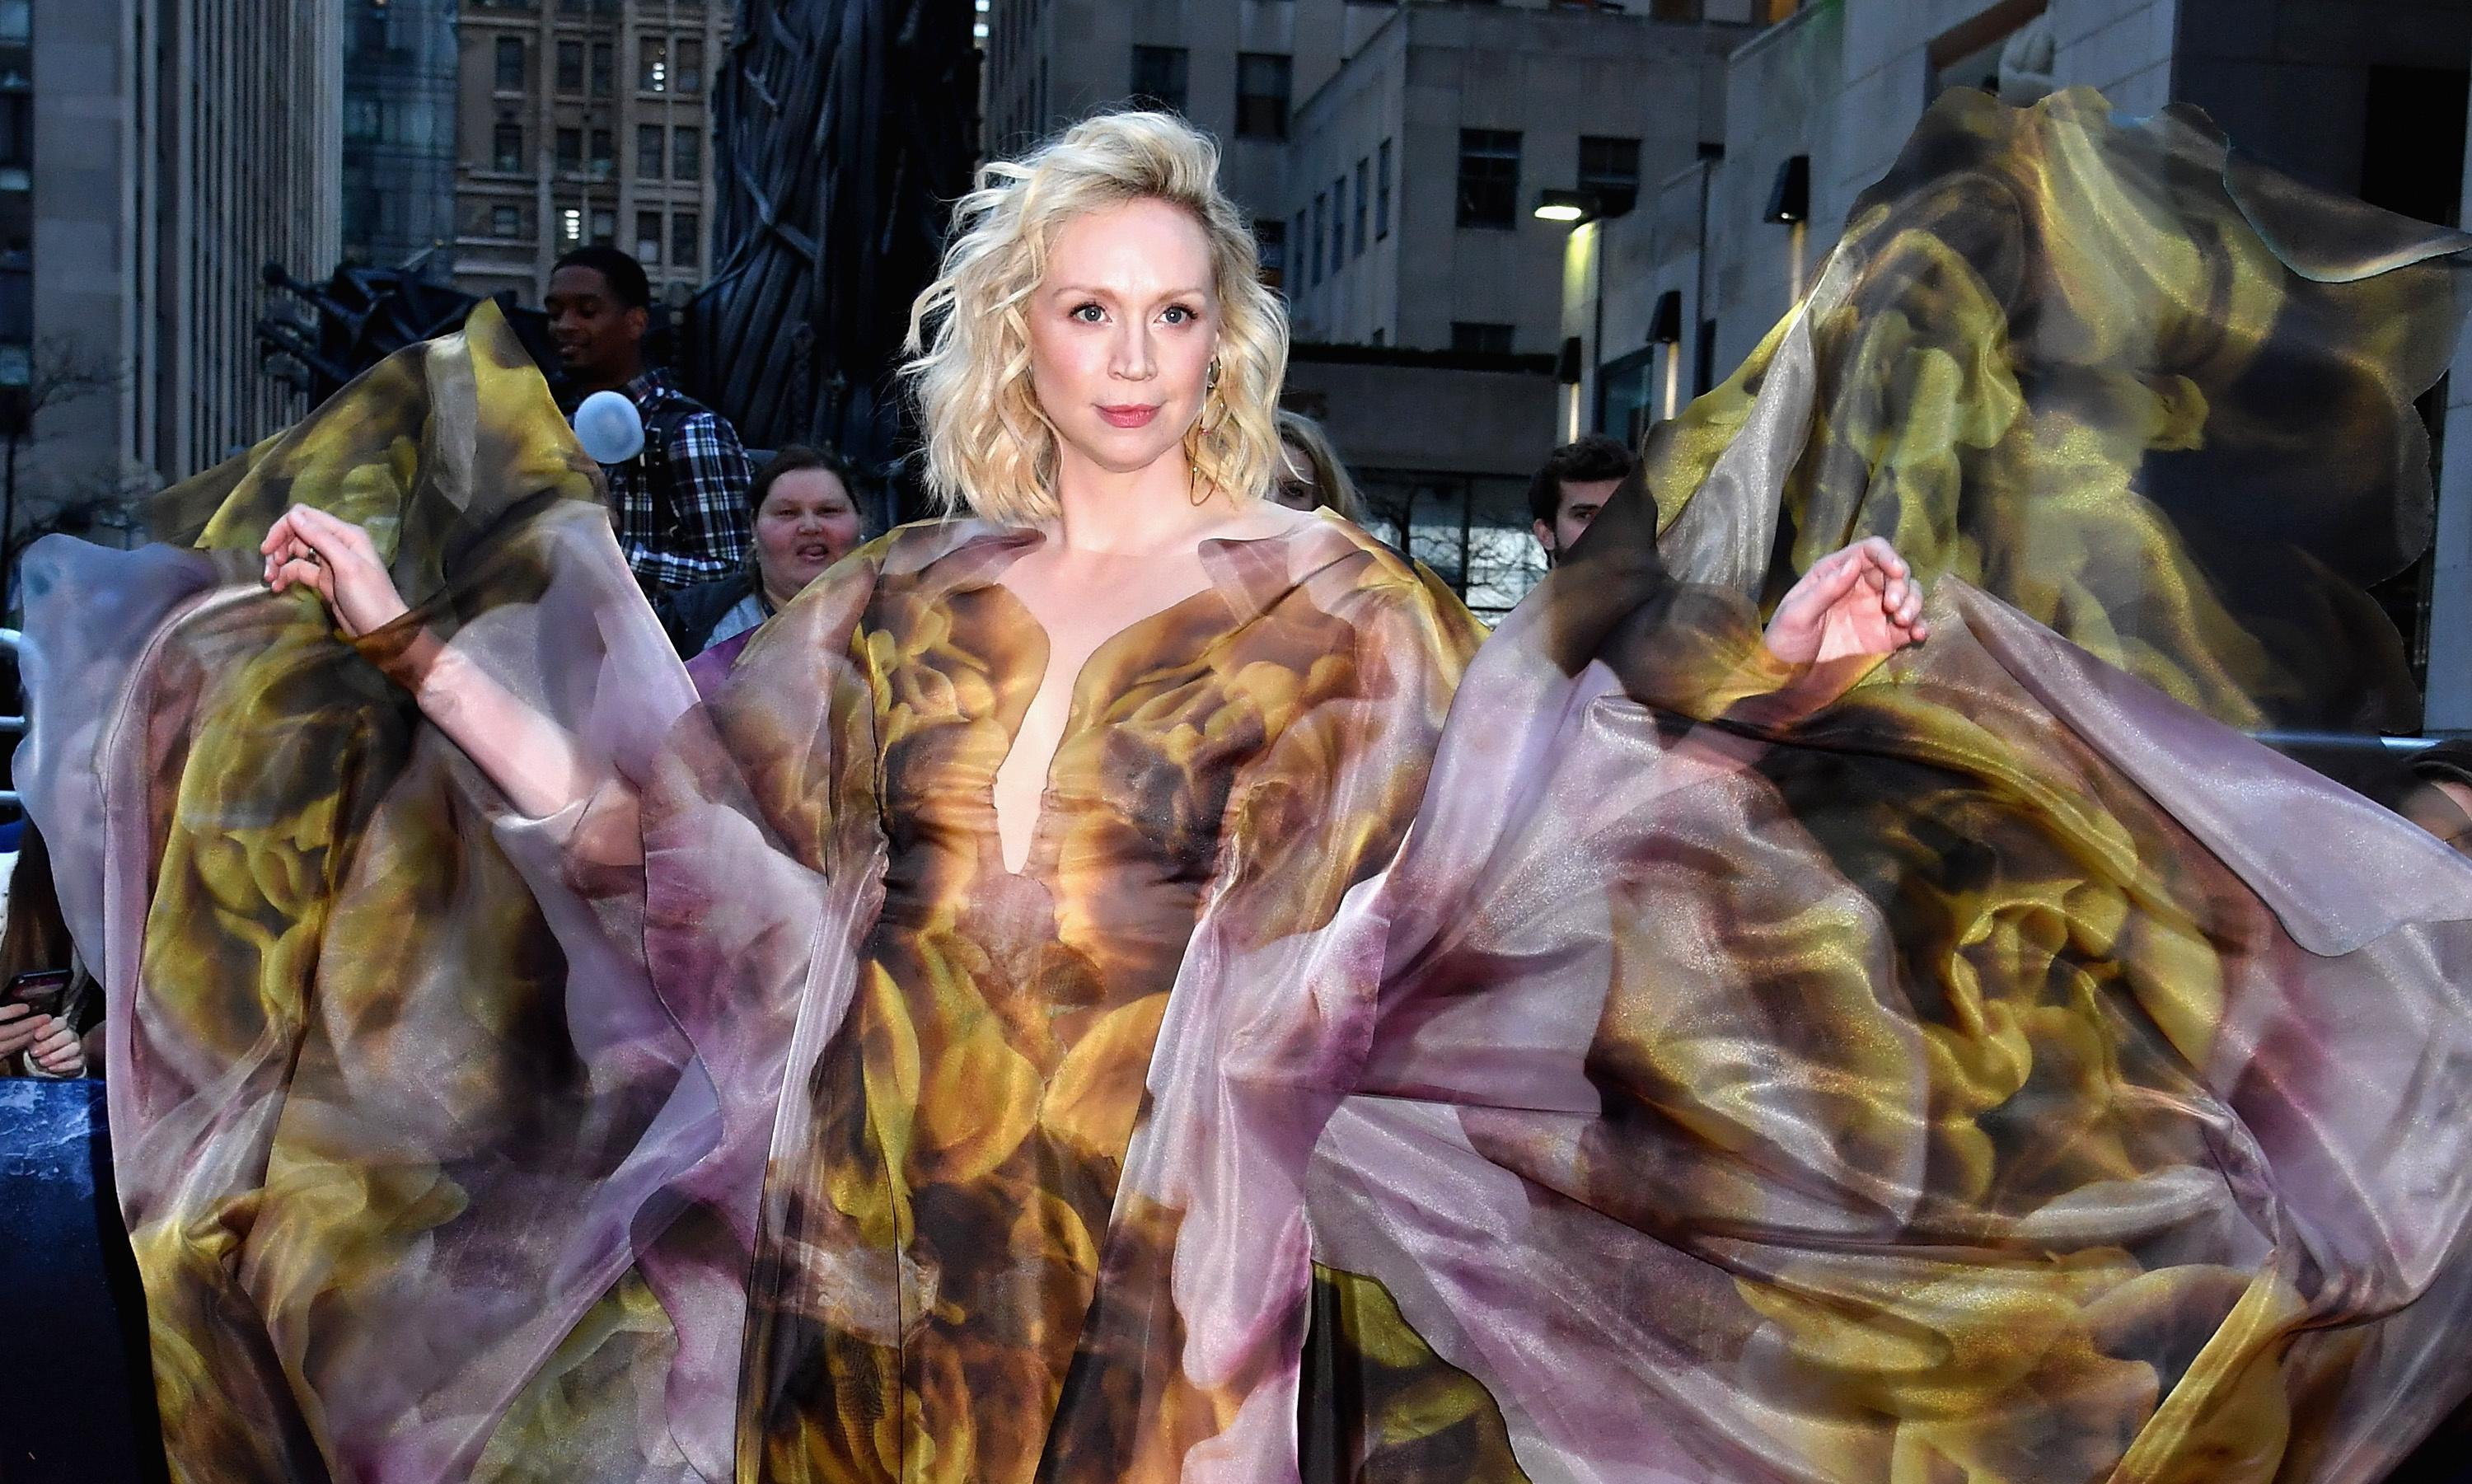 Gwendoline Christie: let's hear it for all the underdogs at the Emmys